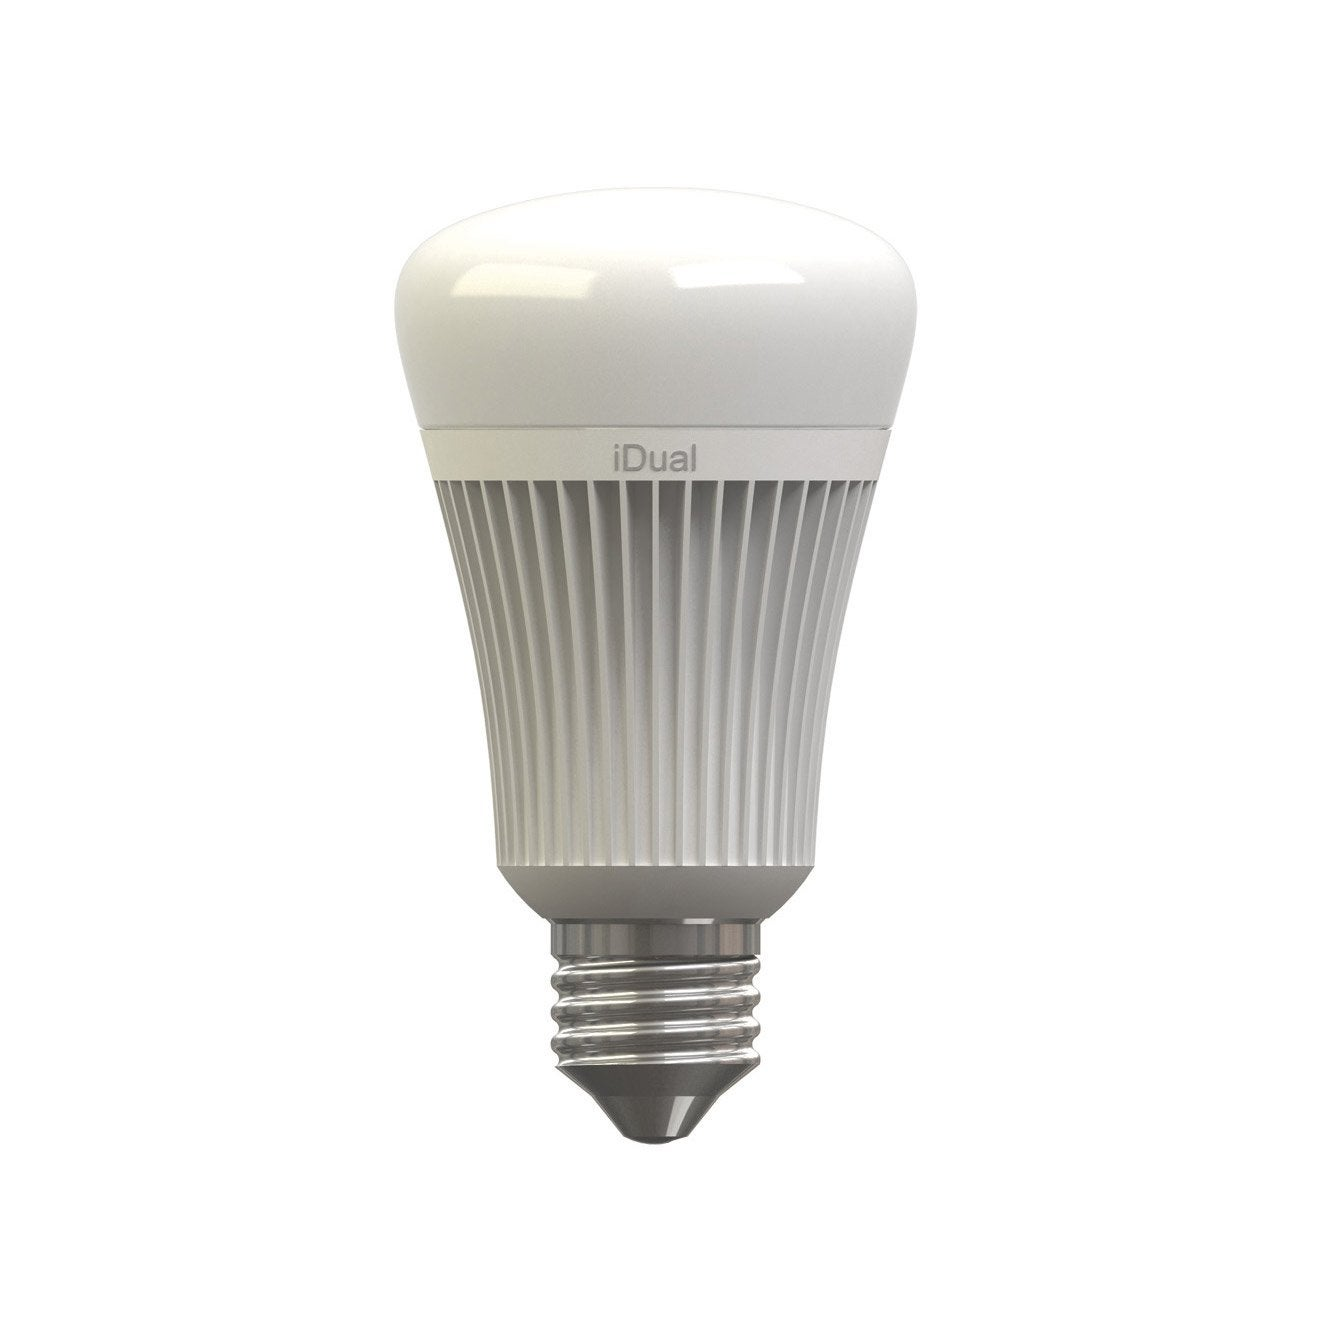 Led Bulb Color Change 115w 700lm E27 Idual Jedi